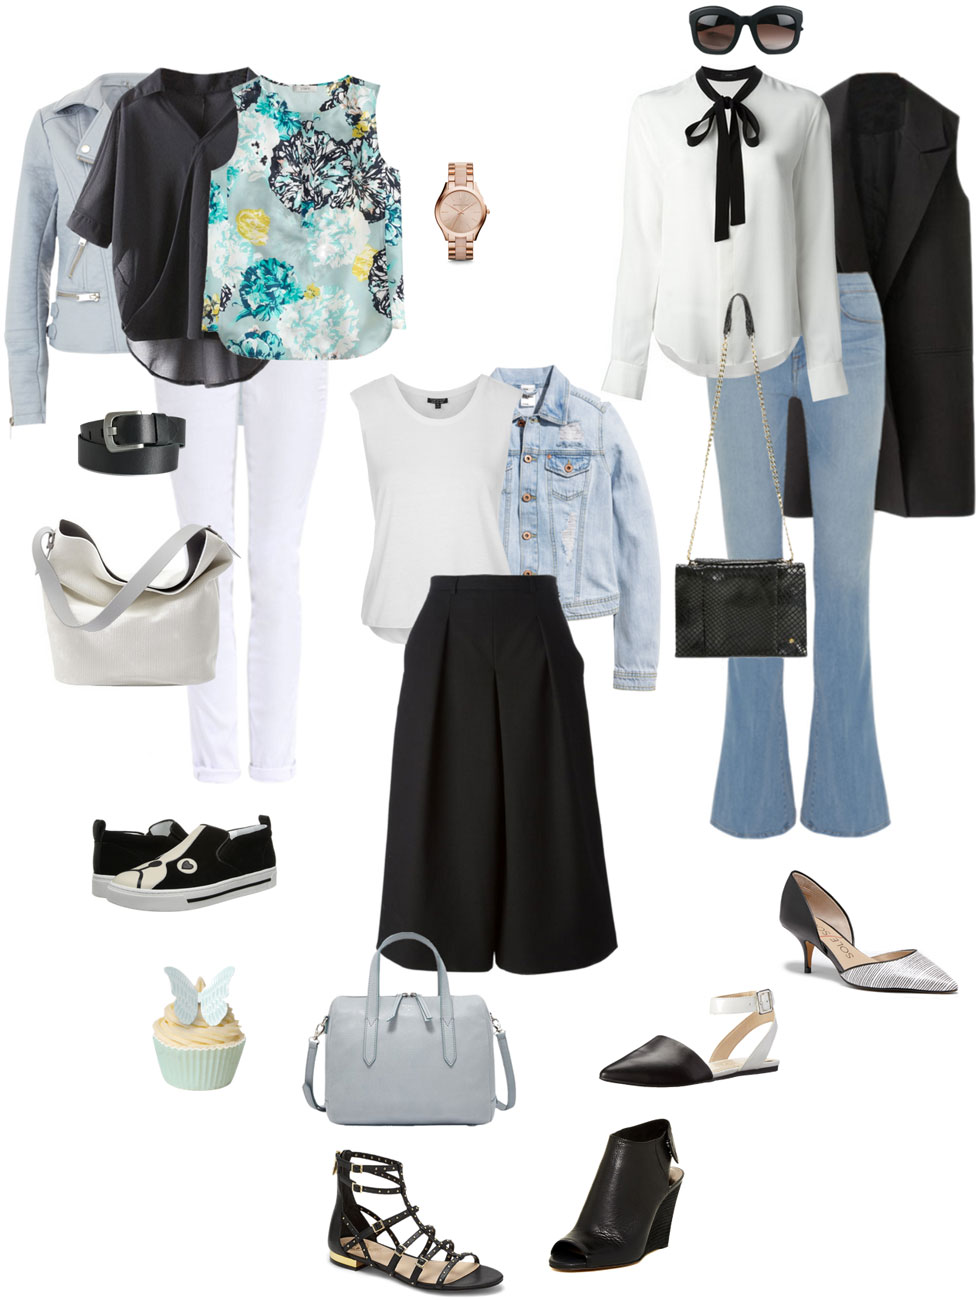 Ensemble: Black, White and Light Blue